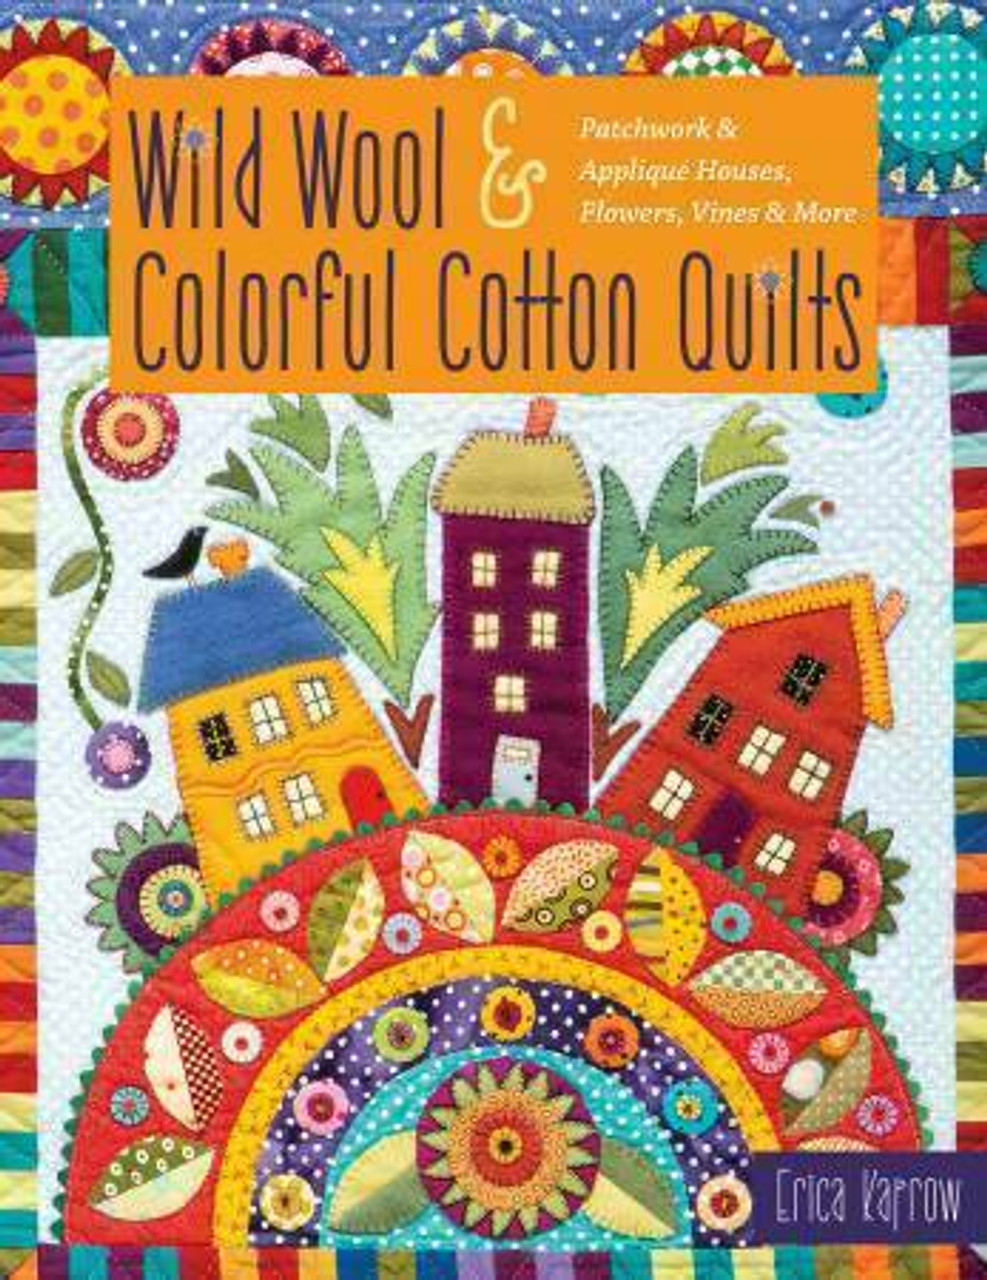 Wild Wool and Colourful Cotton Quilts